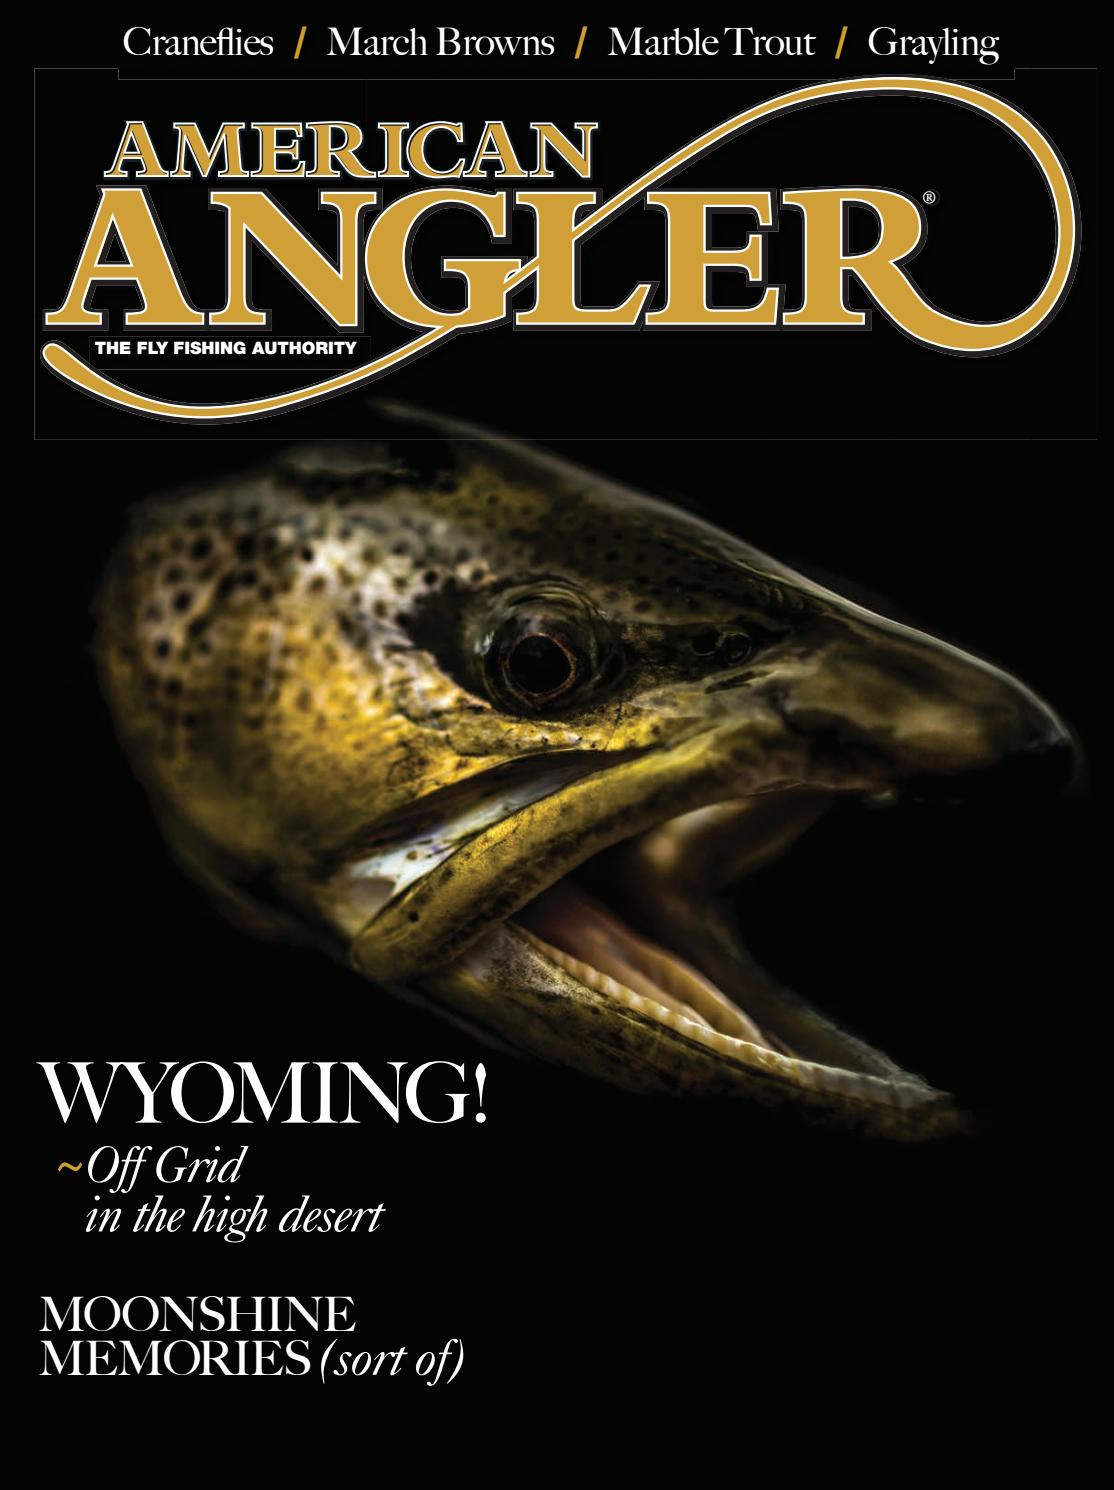 American Angler March April 2019 Edition By Cowboy Publishing Group Issuu Whether you are a wading angler or a float fisherman, we hope this website will help guide you around the arkansas river and the surrounding fisheries as you recreate responsibly and enjoy the many outstanding outoor resources in the valley. american angler march april 2019